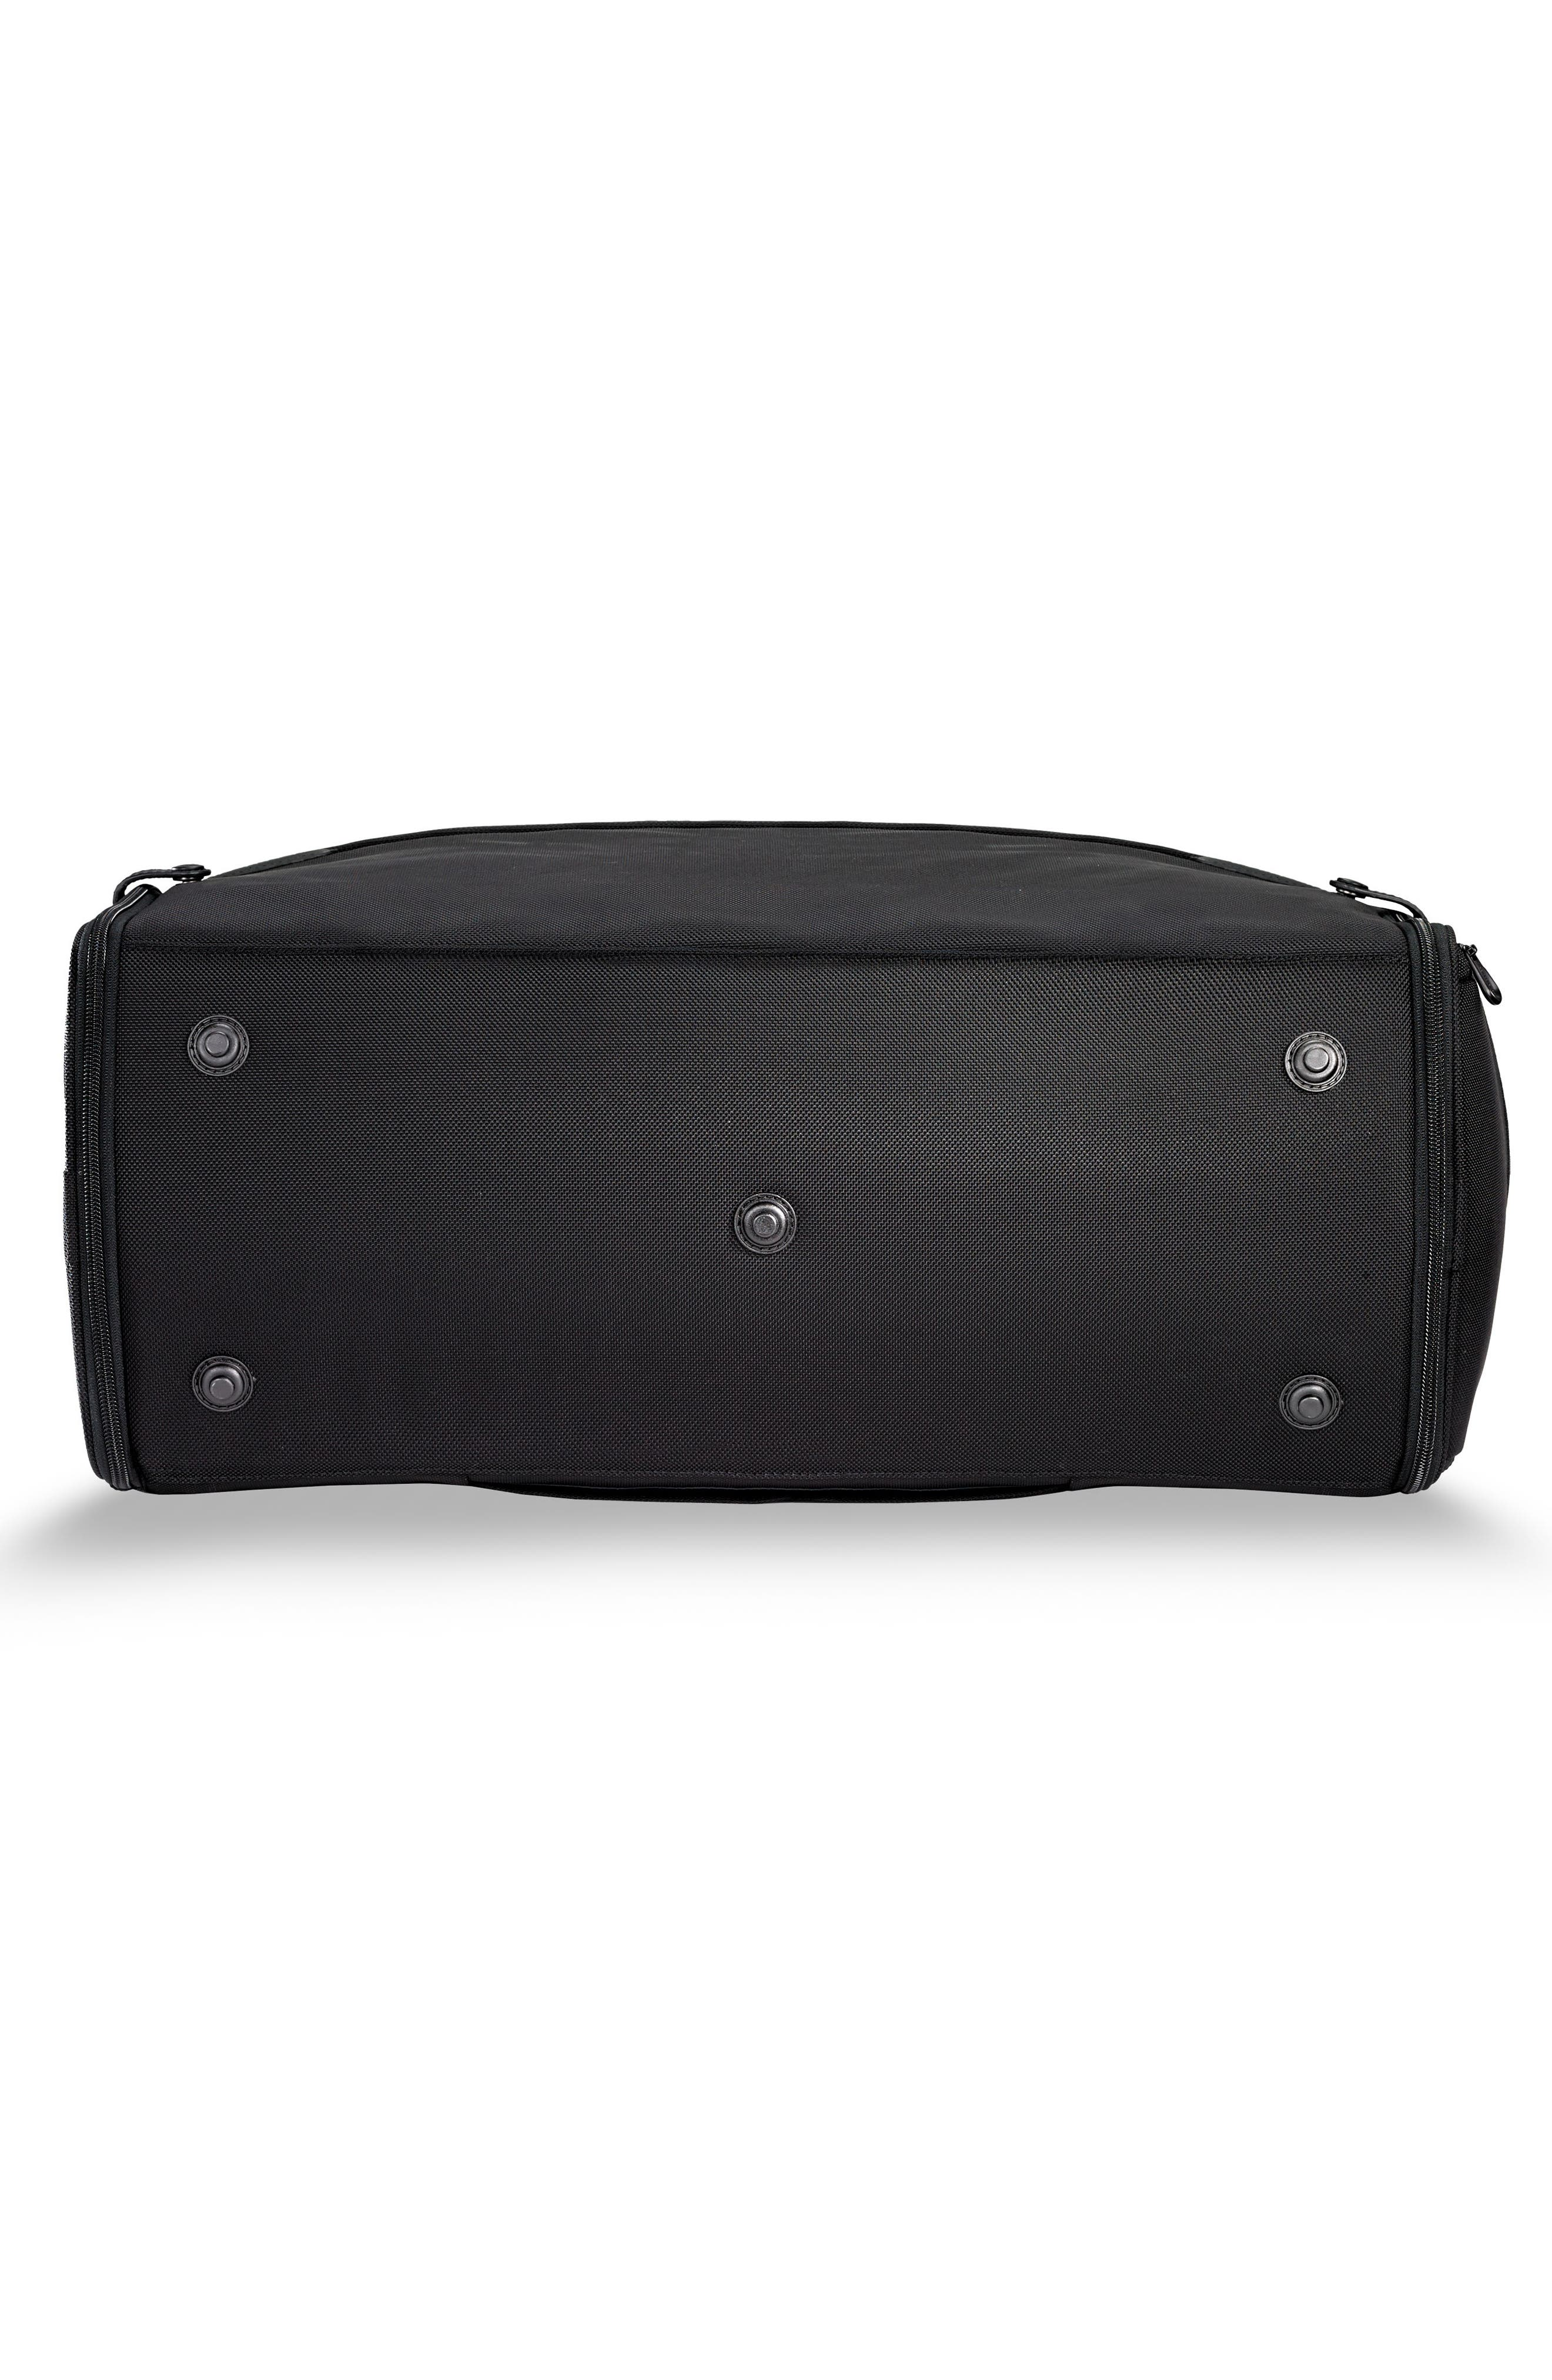 BRIGGS & RILEY, Baseline Suiter Duffle Bag, Alternate thumbnail 6, color, BLACK